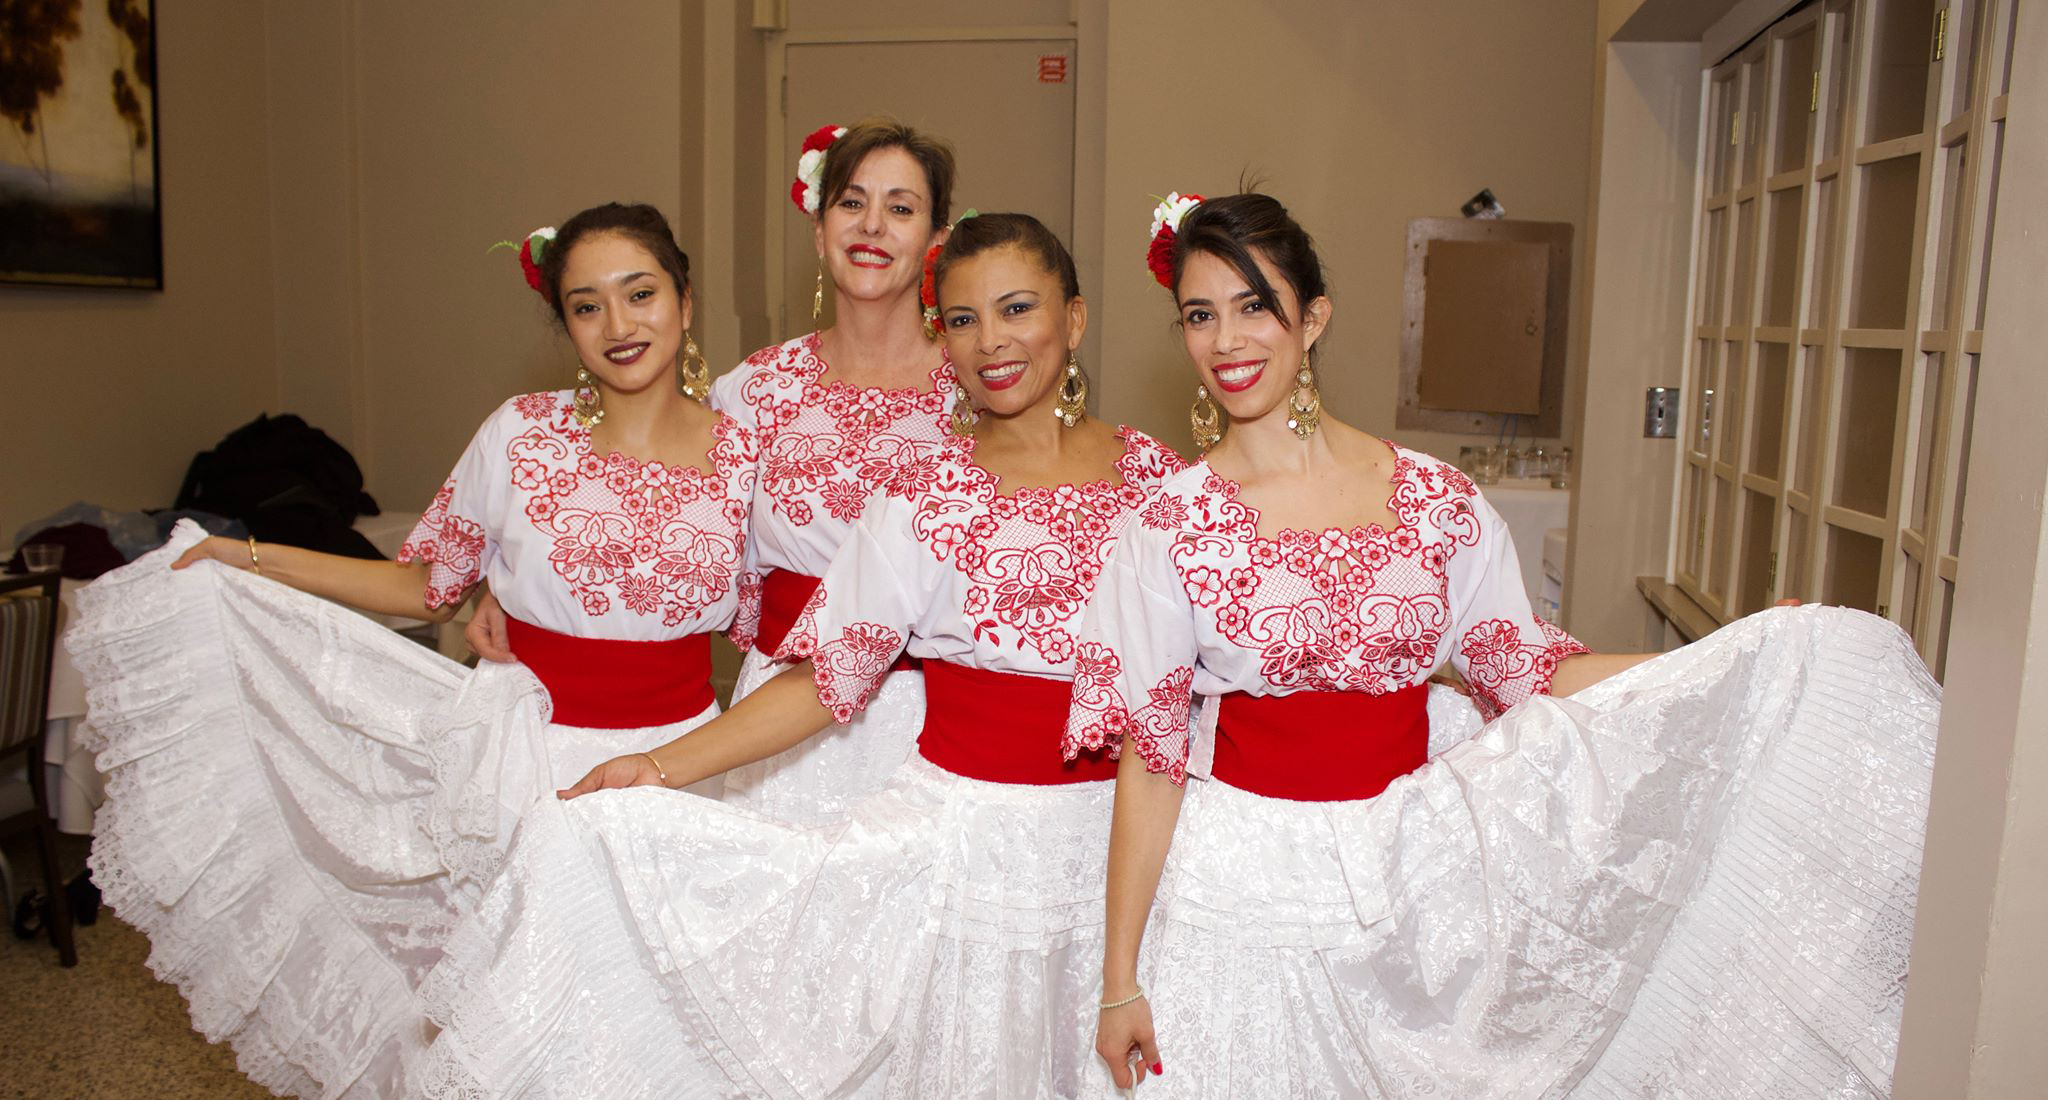 Keeping Hispanic cultural heritage alive, while away